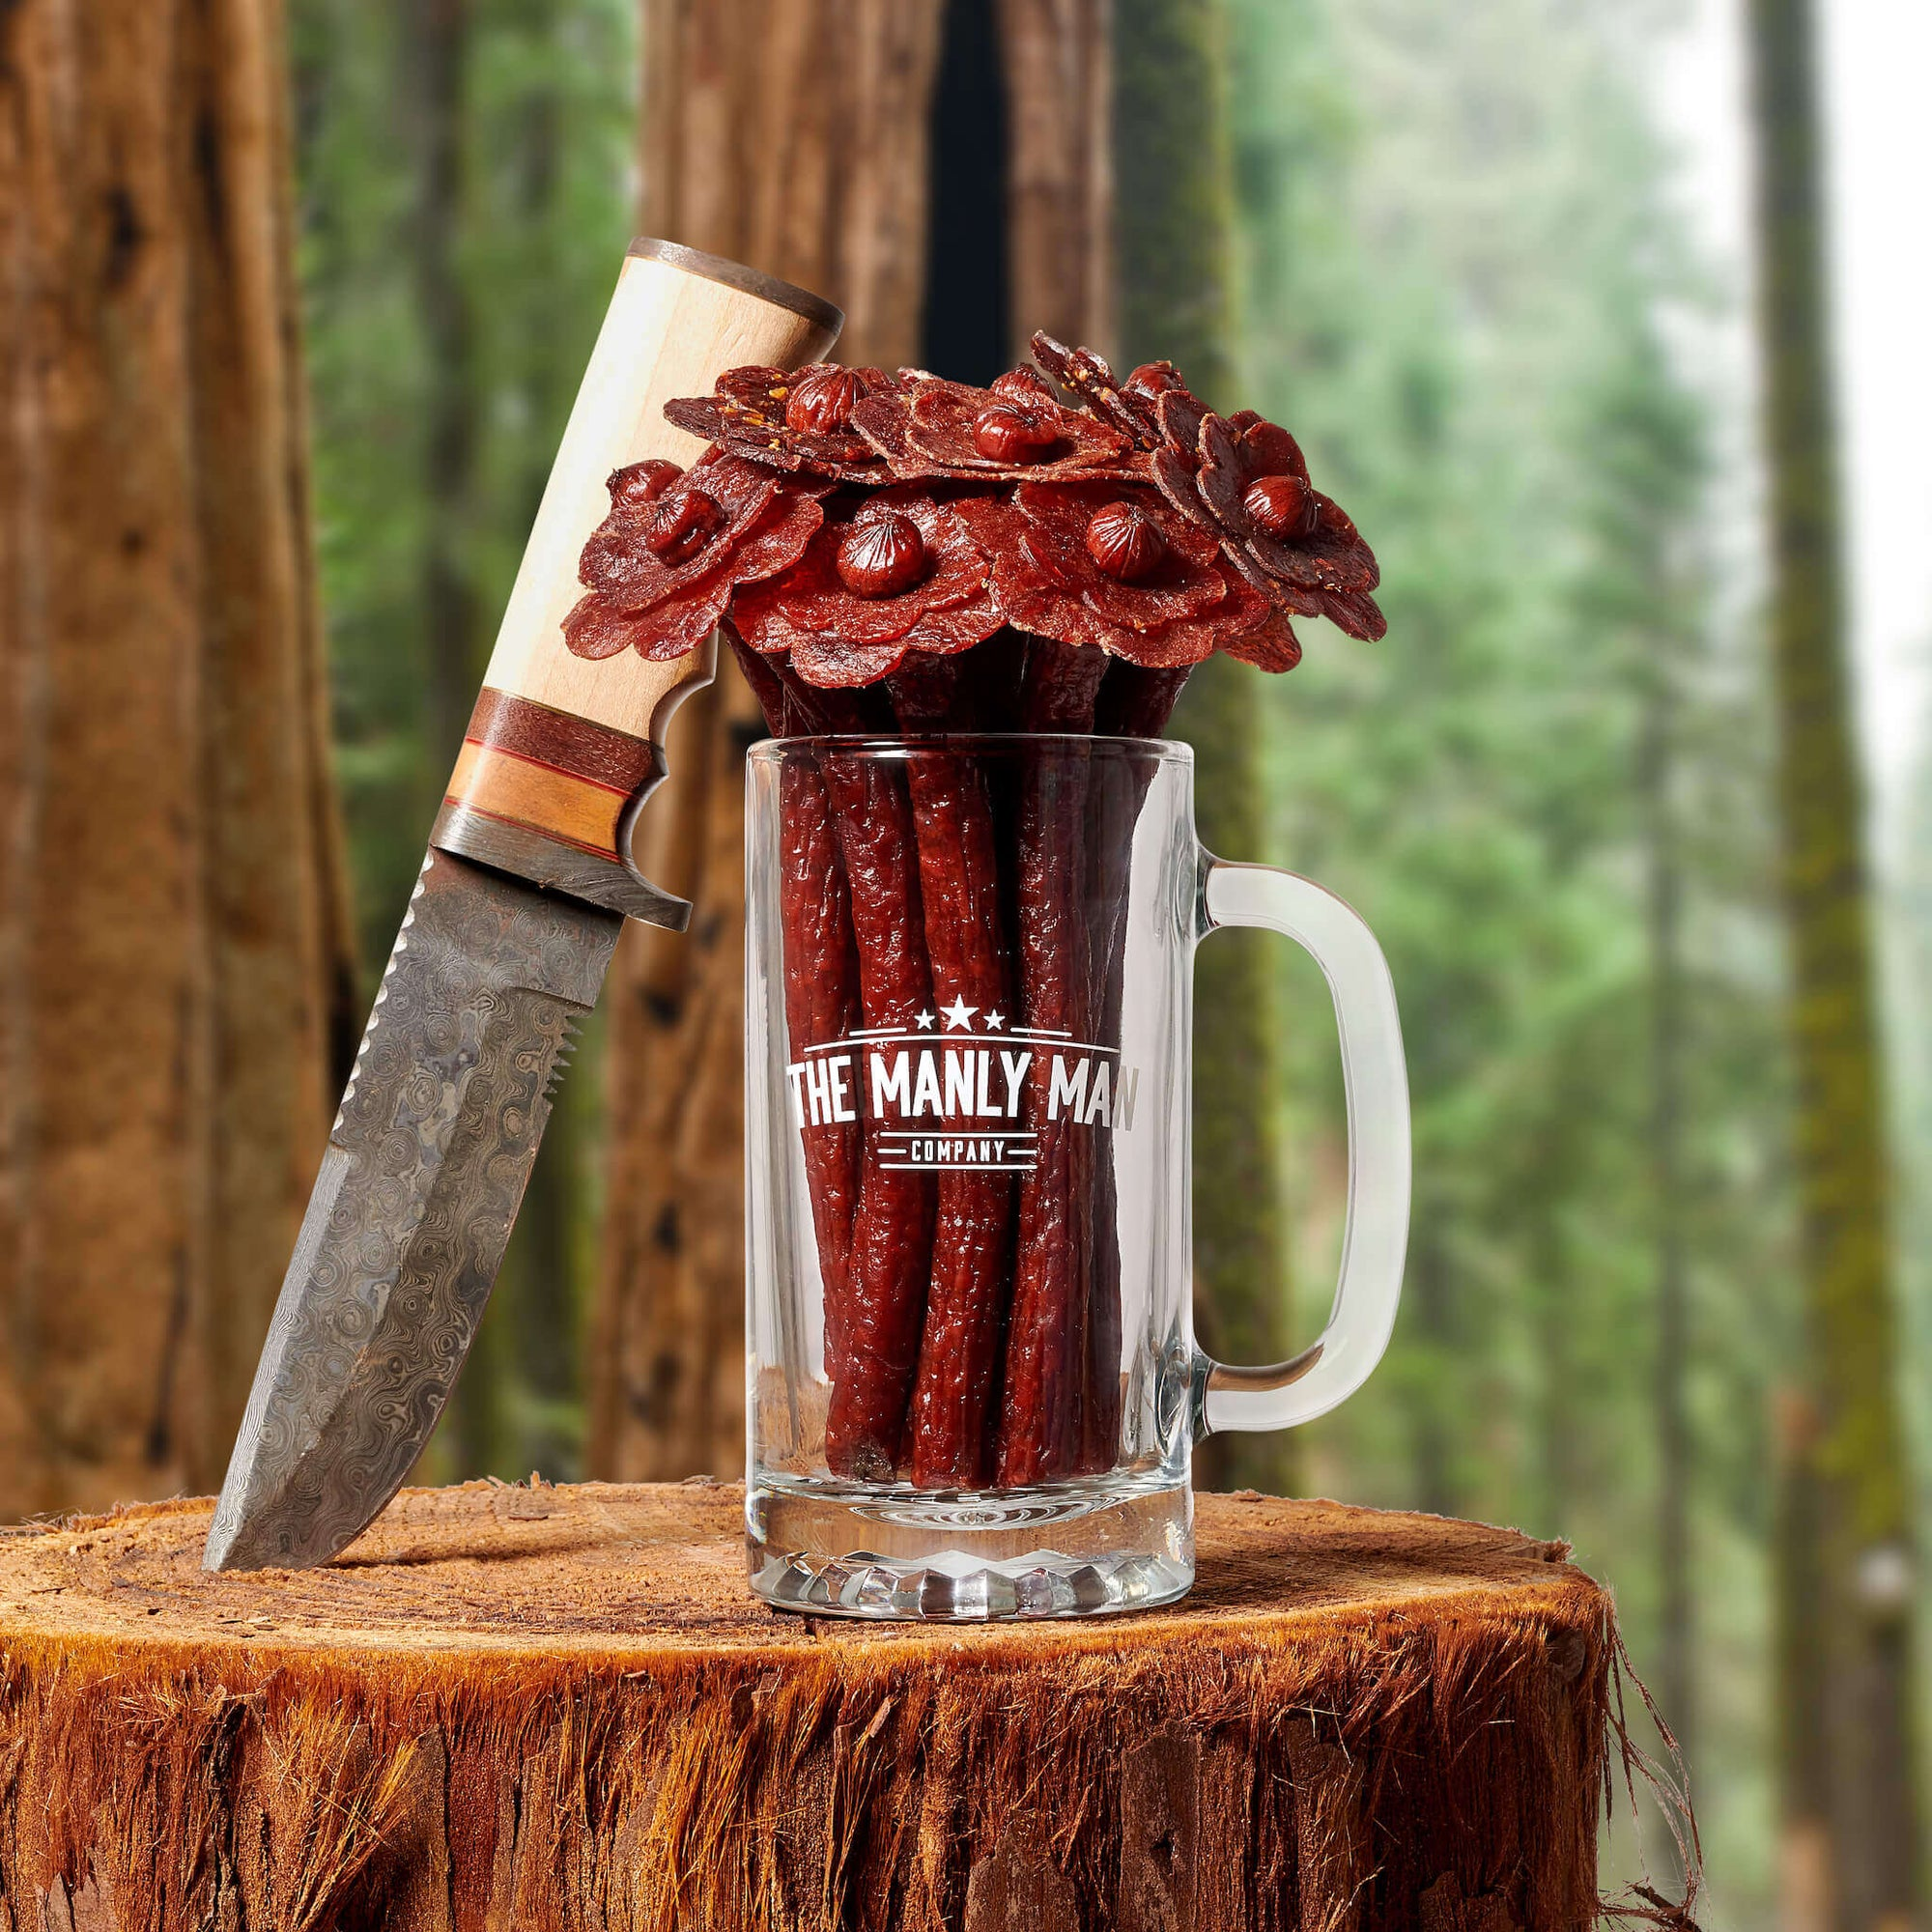 Best selling type of man bouquet-- beef jerky flowers that are sitting on a log with a bowie knife prop